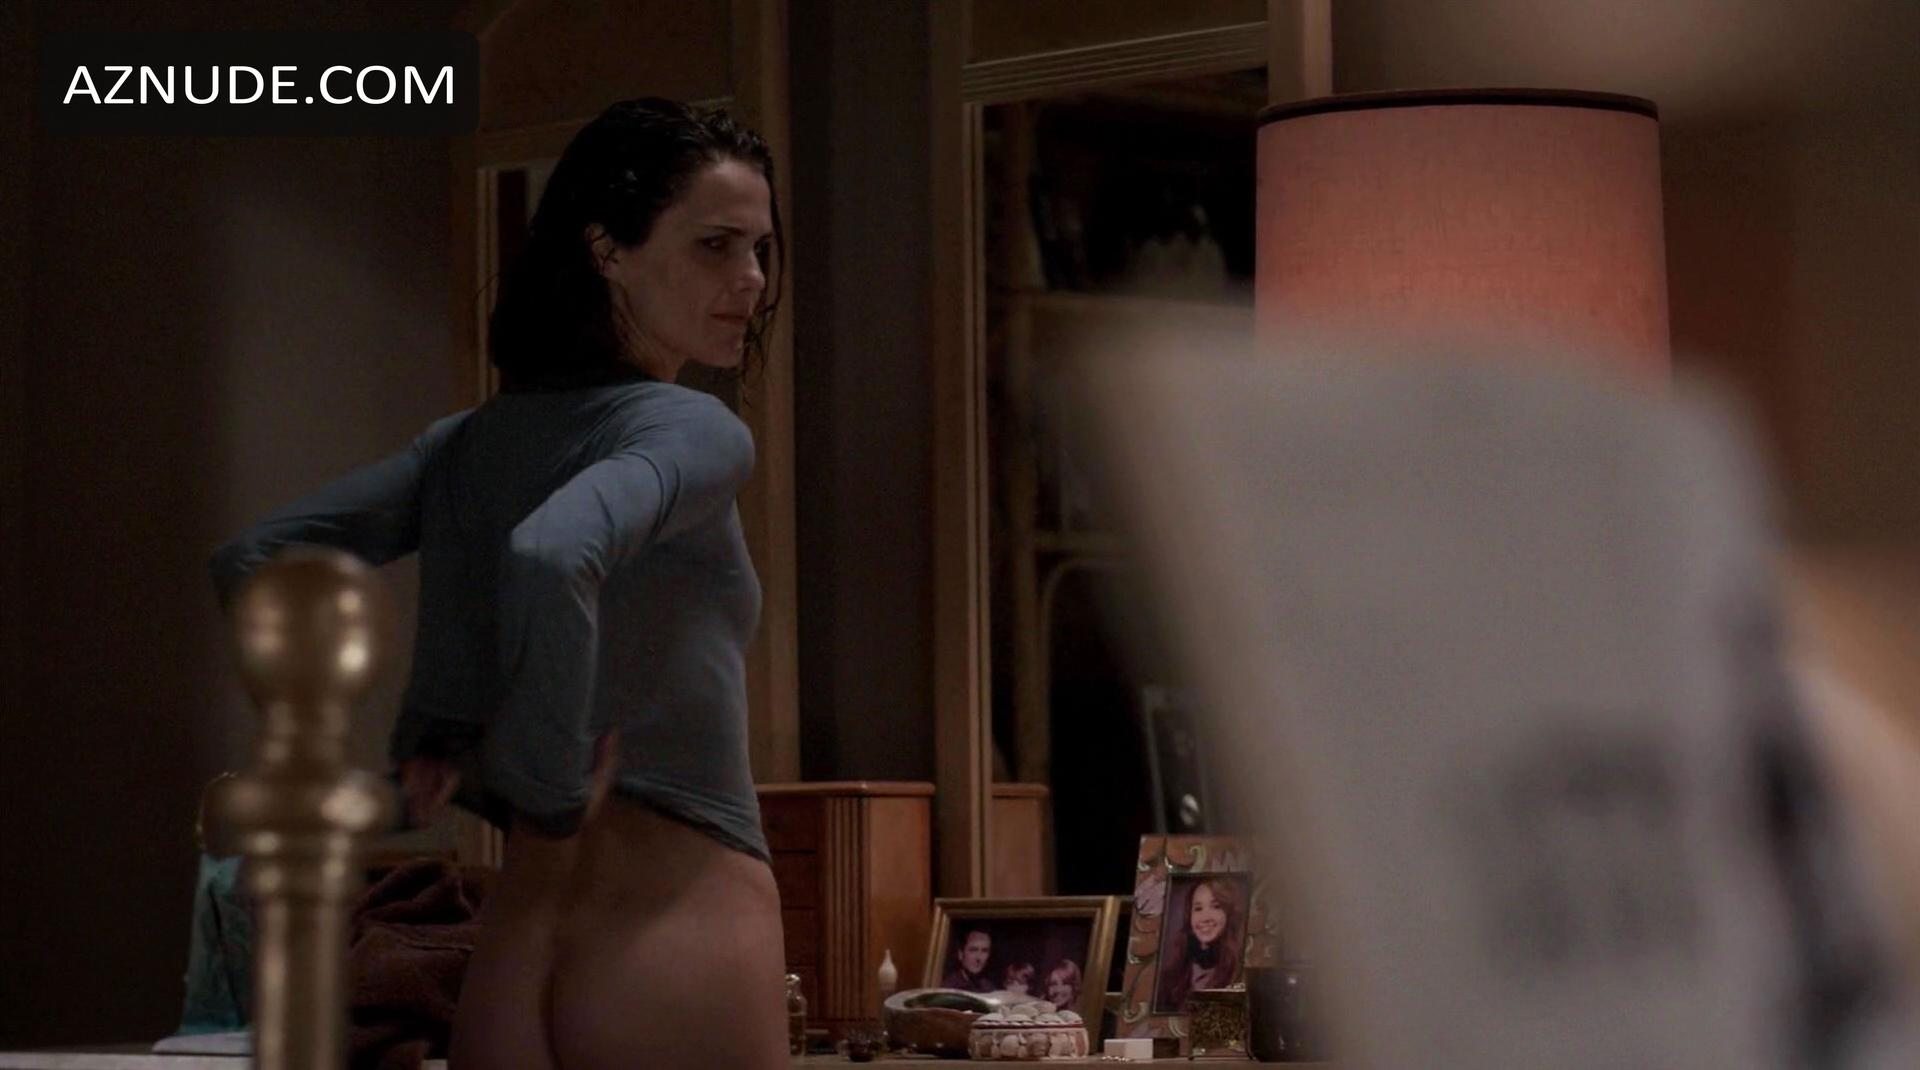 Final, sorry, Keri russell americans nude curious